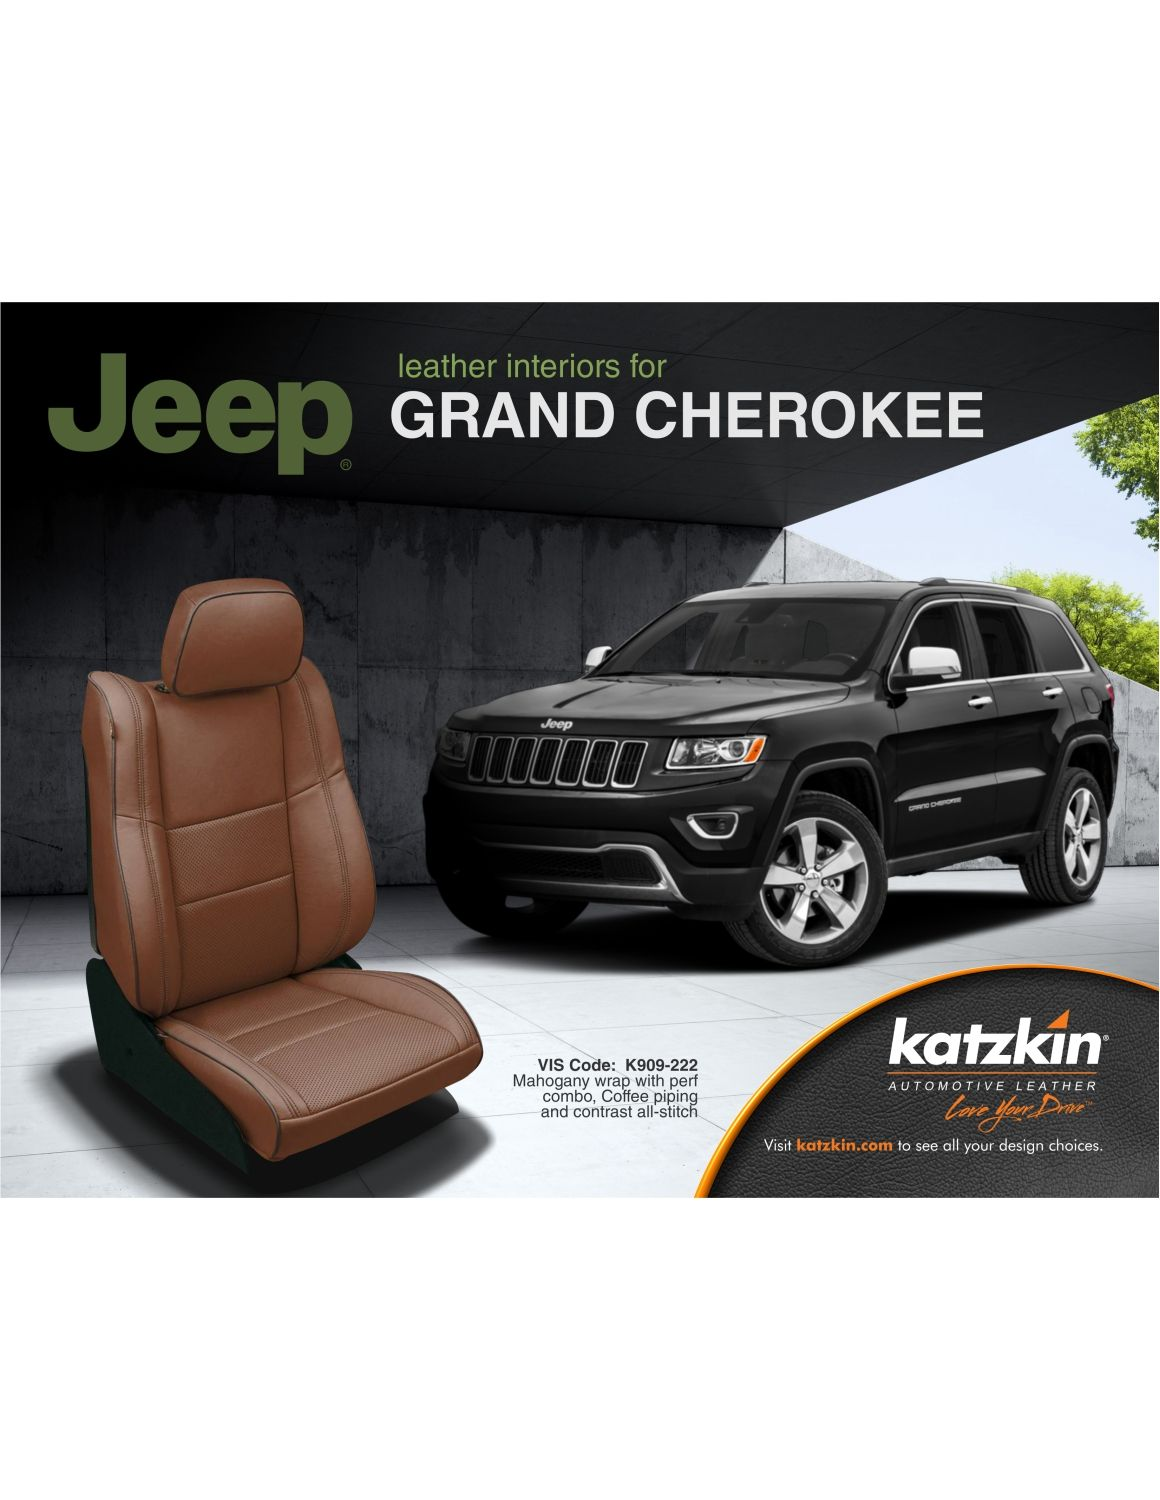 Jeep Grand Cherokee 2018 (E-Brochure)